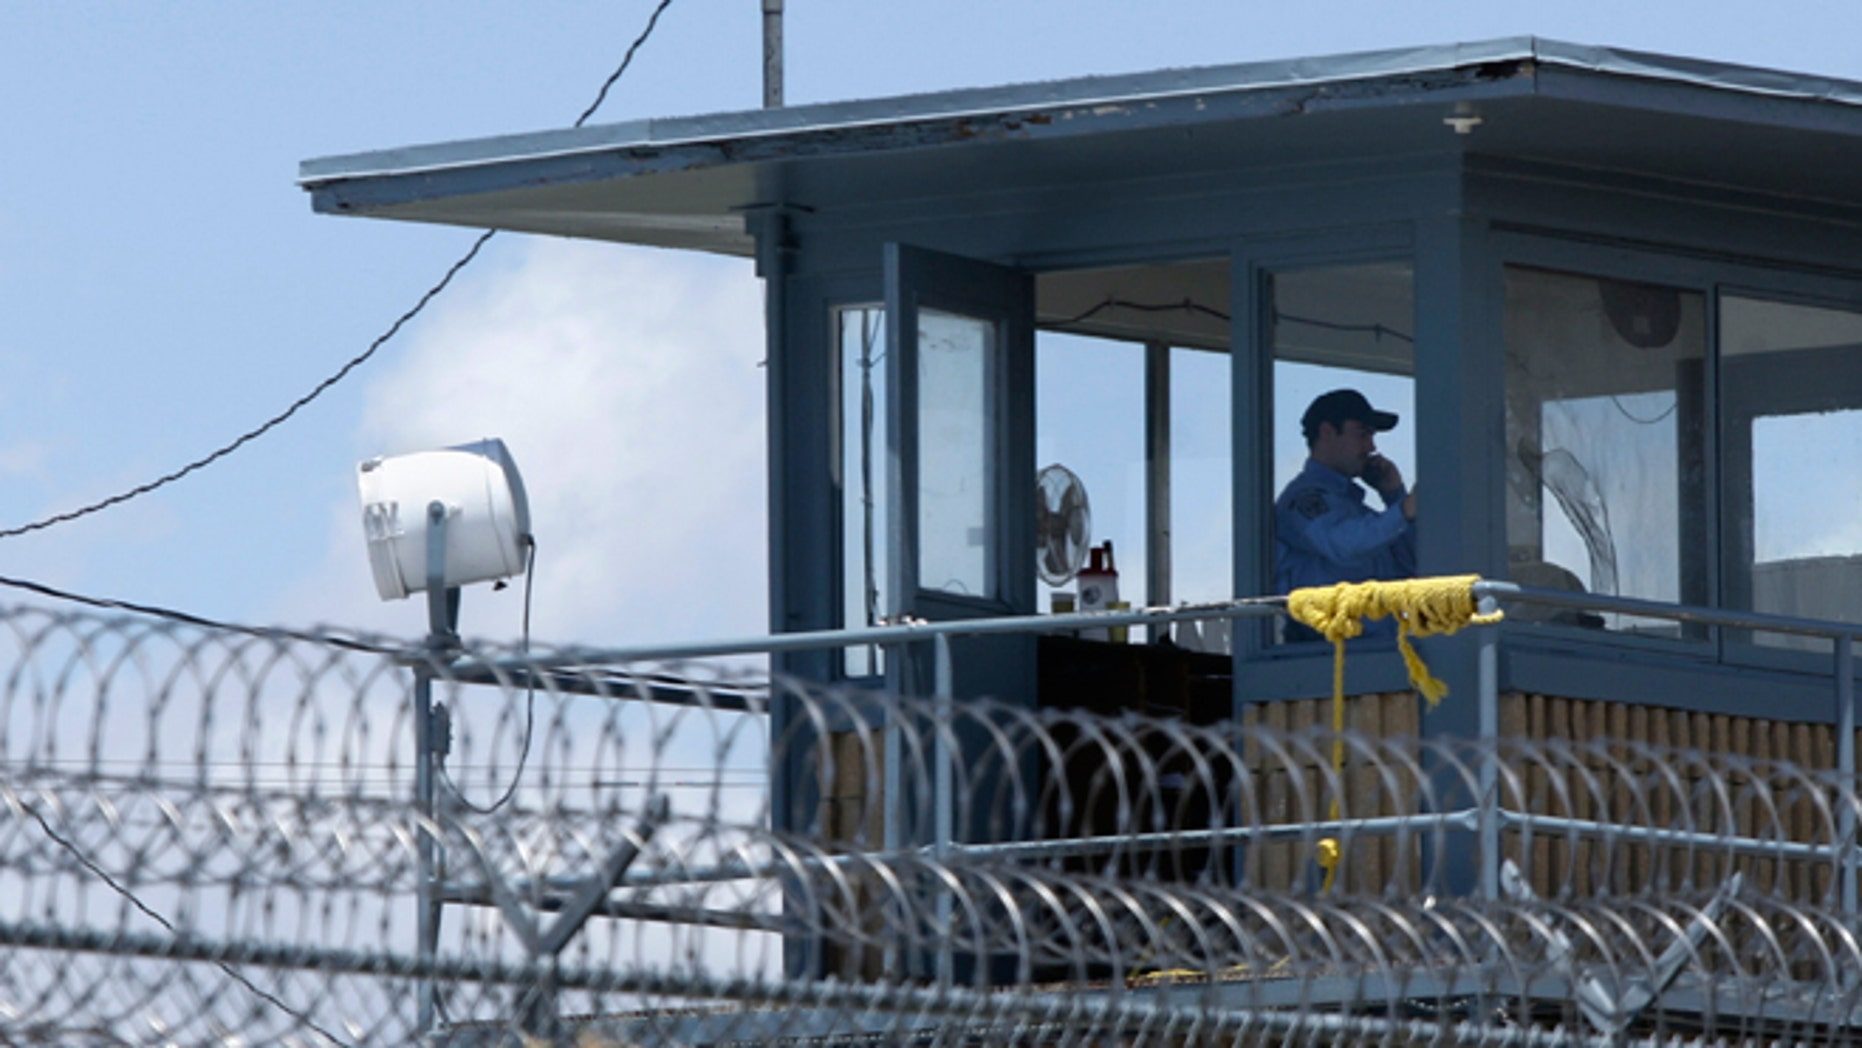 FILE - May 13, 2011: A guard sits in a tower at the Arkansas Department of Correction Tucker Unit near Tucker, Ark. Arkansas Gov. Asa Hutchinson on  Feb. 18, 2015, detailed his effort to to reduce the backlog of more than 2,600 state inmates in county jails throughout Arkansas.